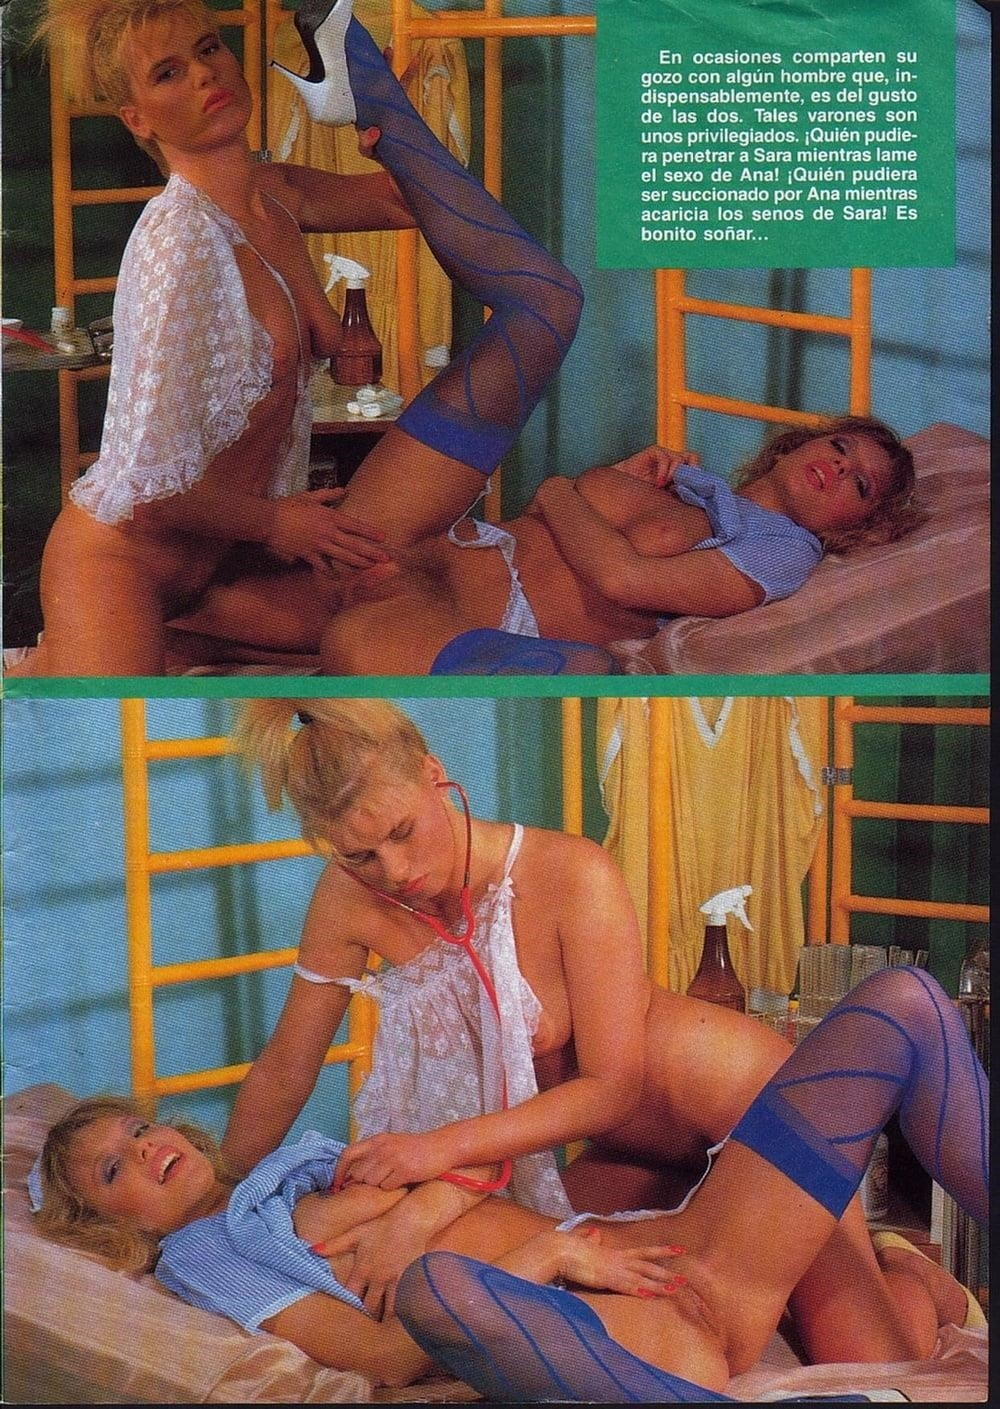 Lesbian orgy porn pictures-4770